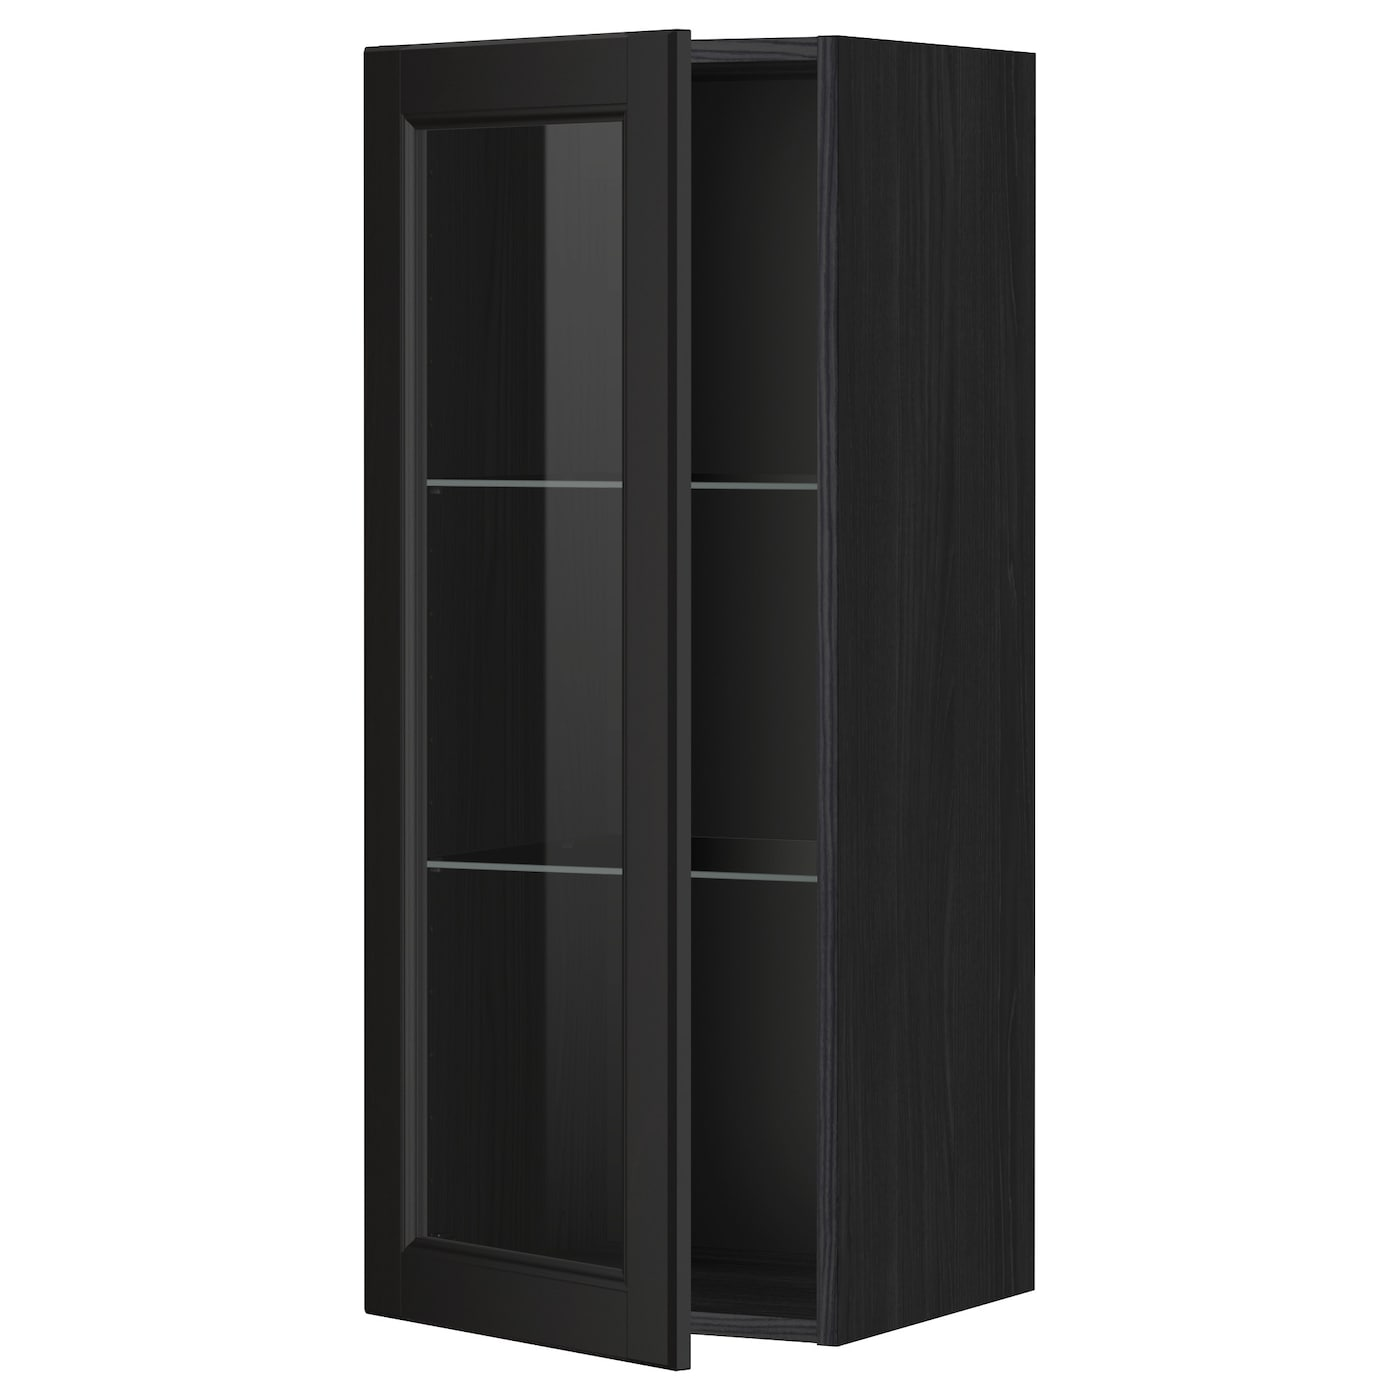 Metod Wall Cabinet W Shelves Glass Door Black Laxarby